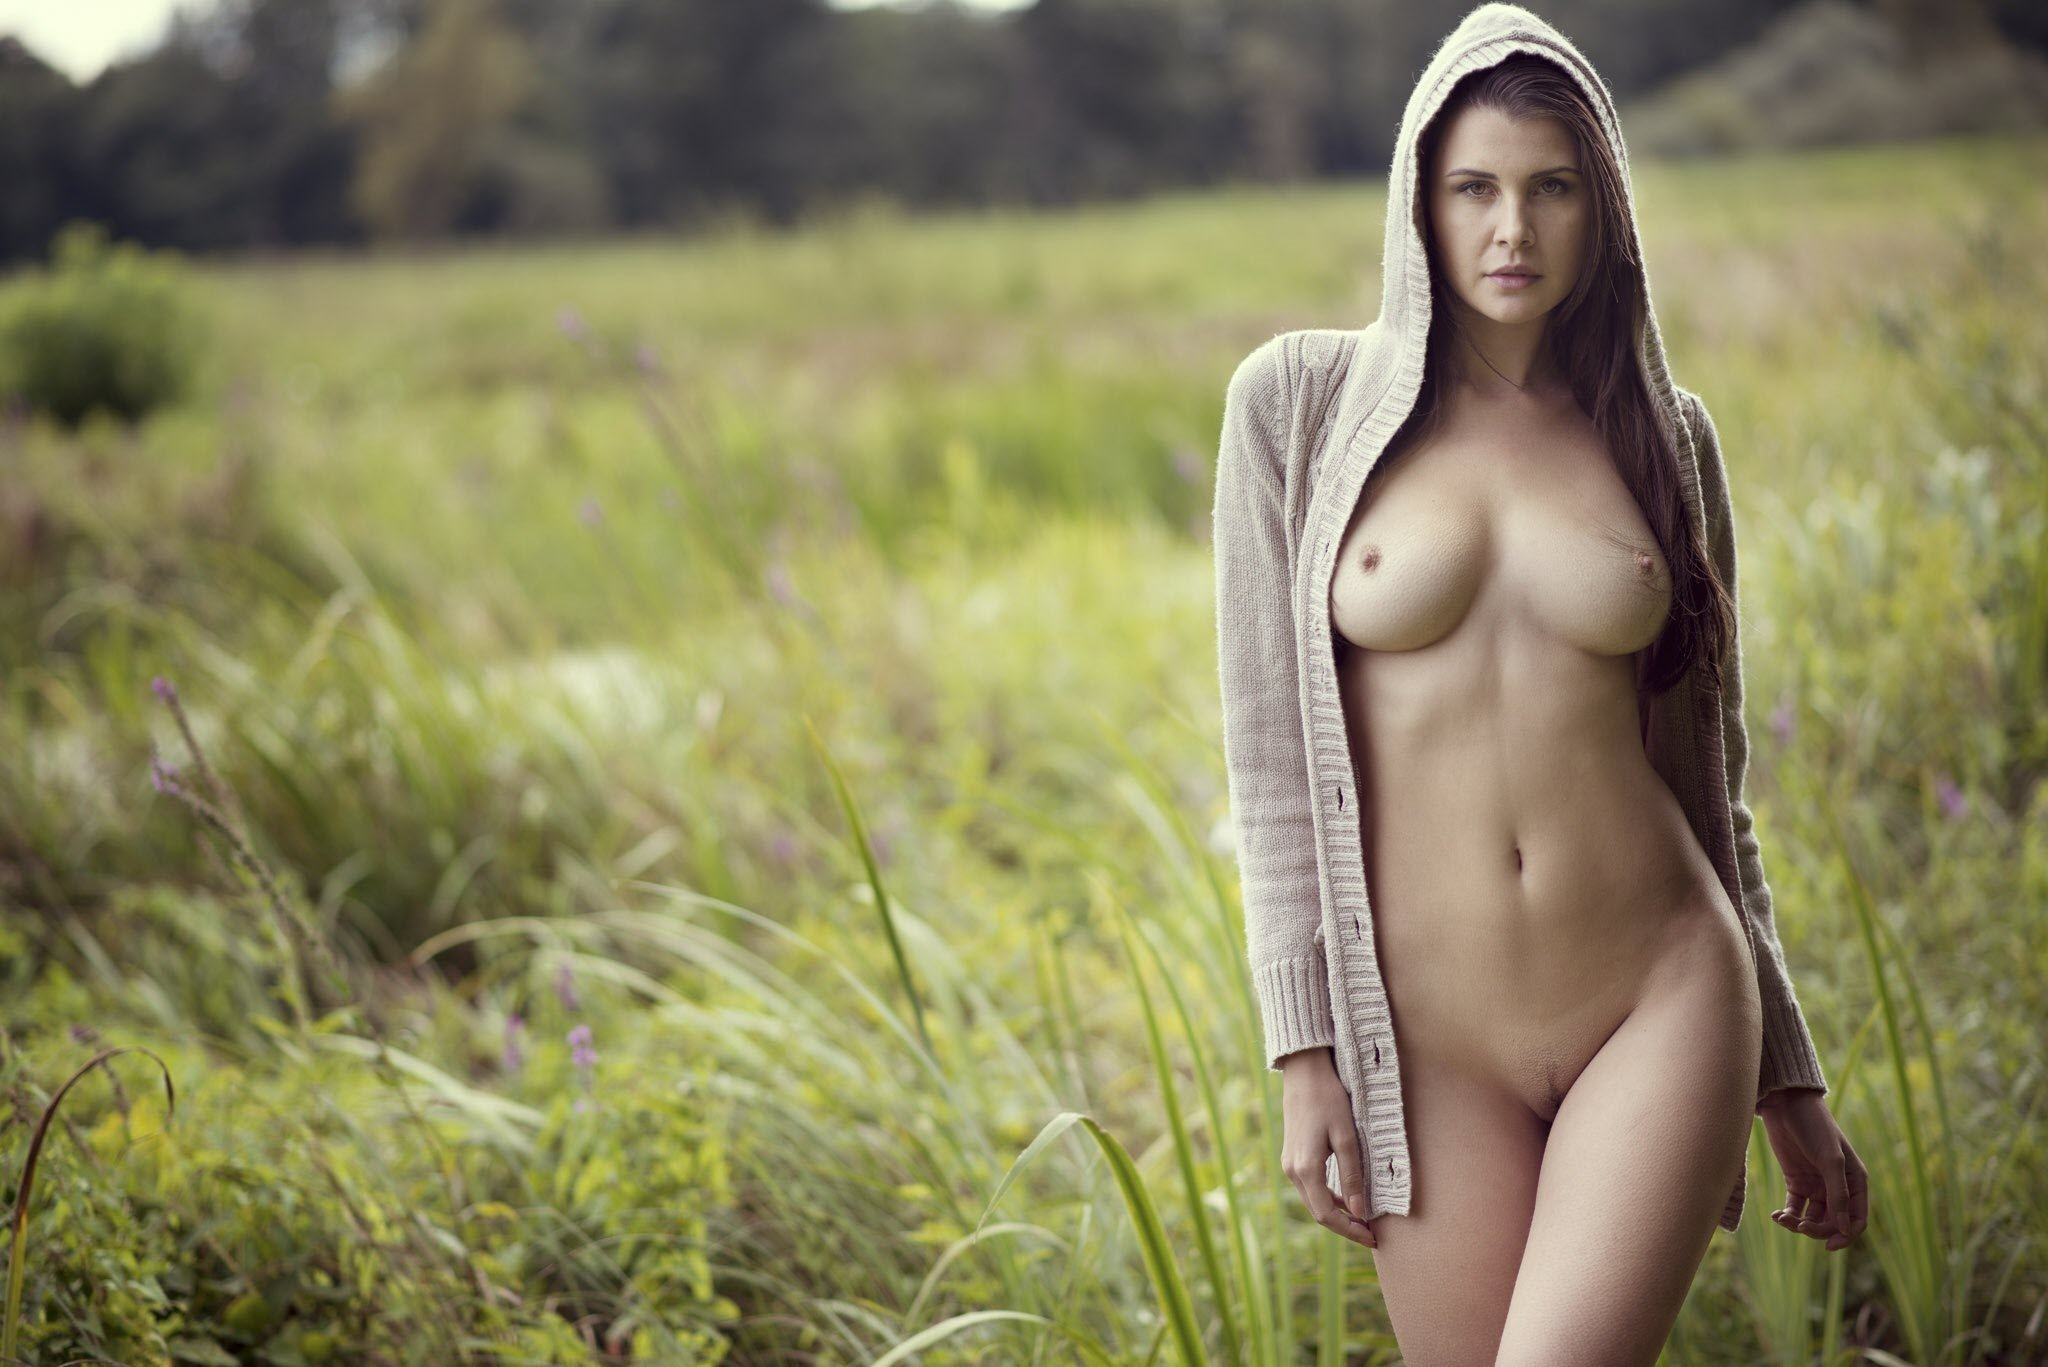 Natural beauty nude — photo 2